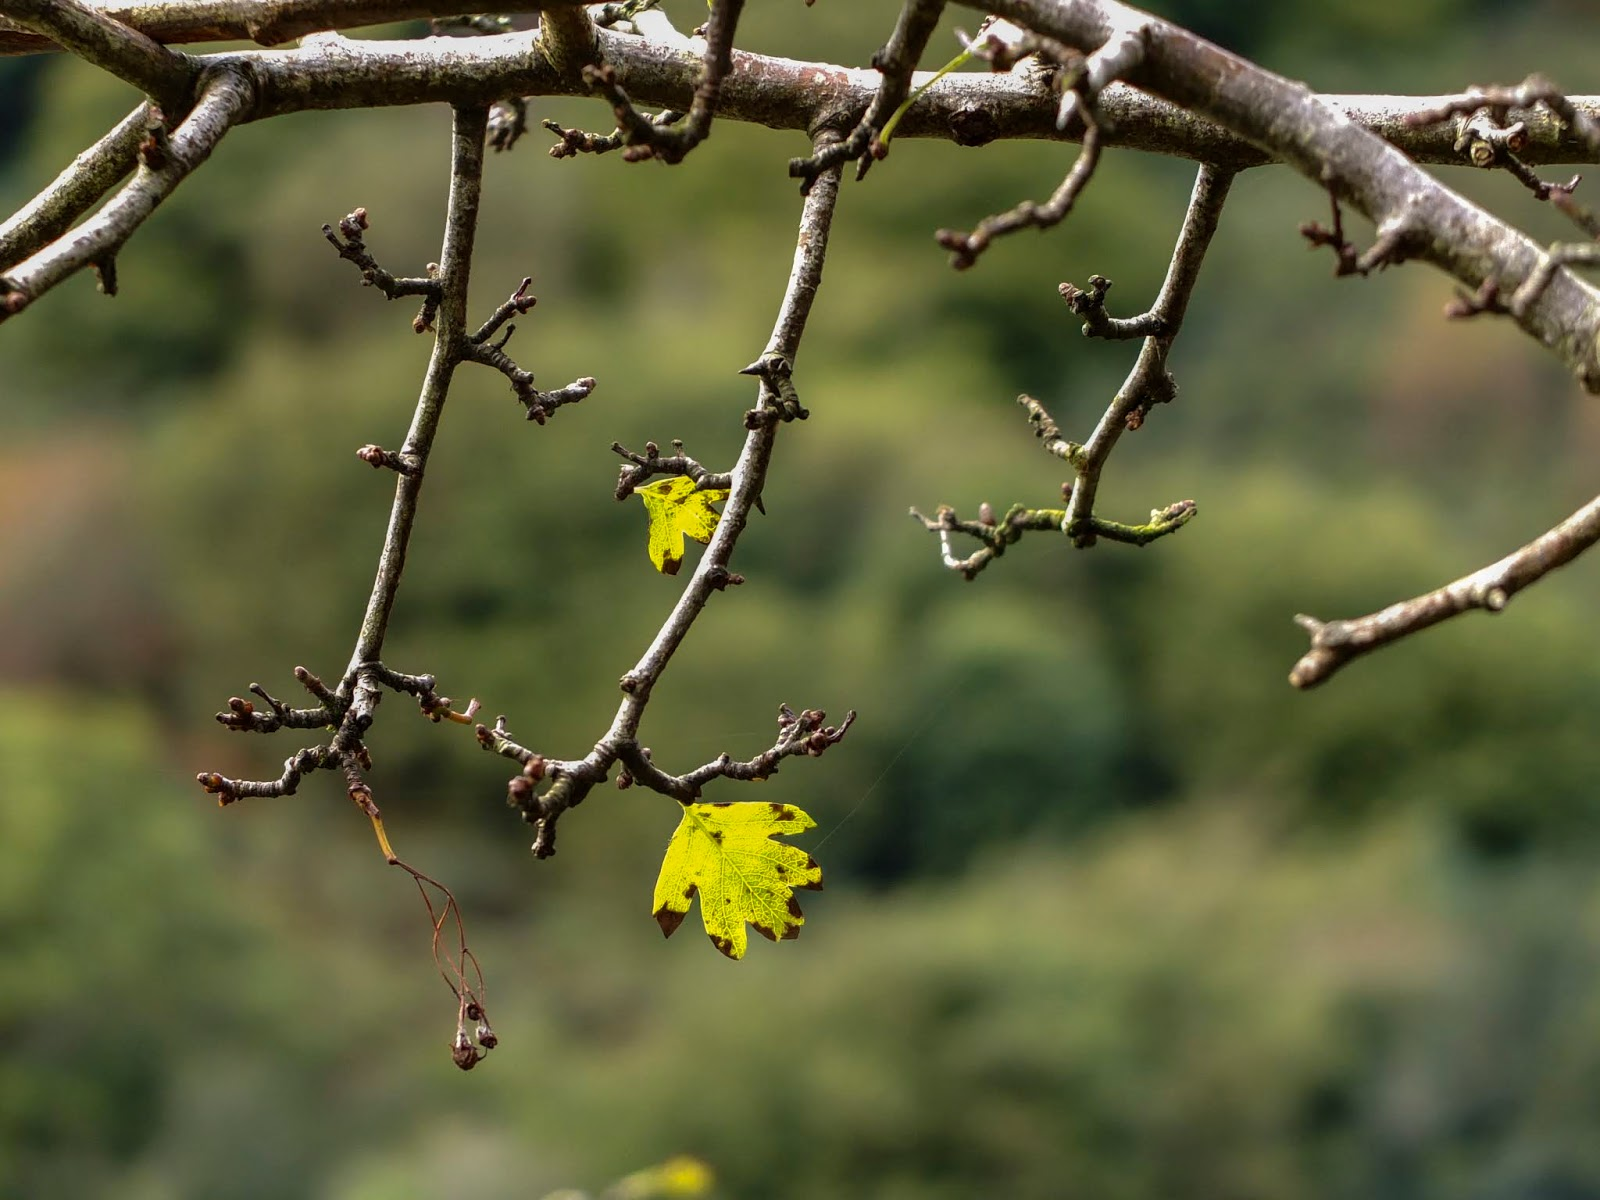 Two small yellow leaves hanging on an almost bare Hawthorn tree branch.